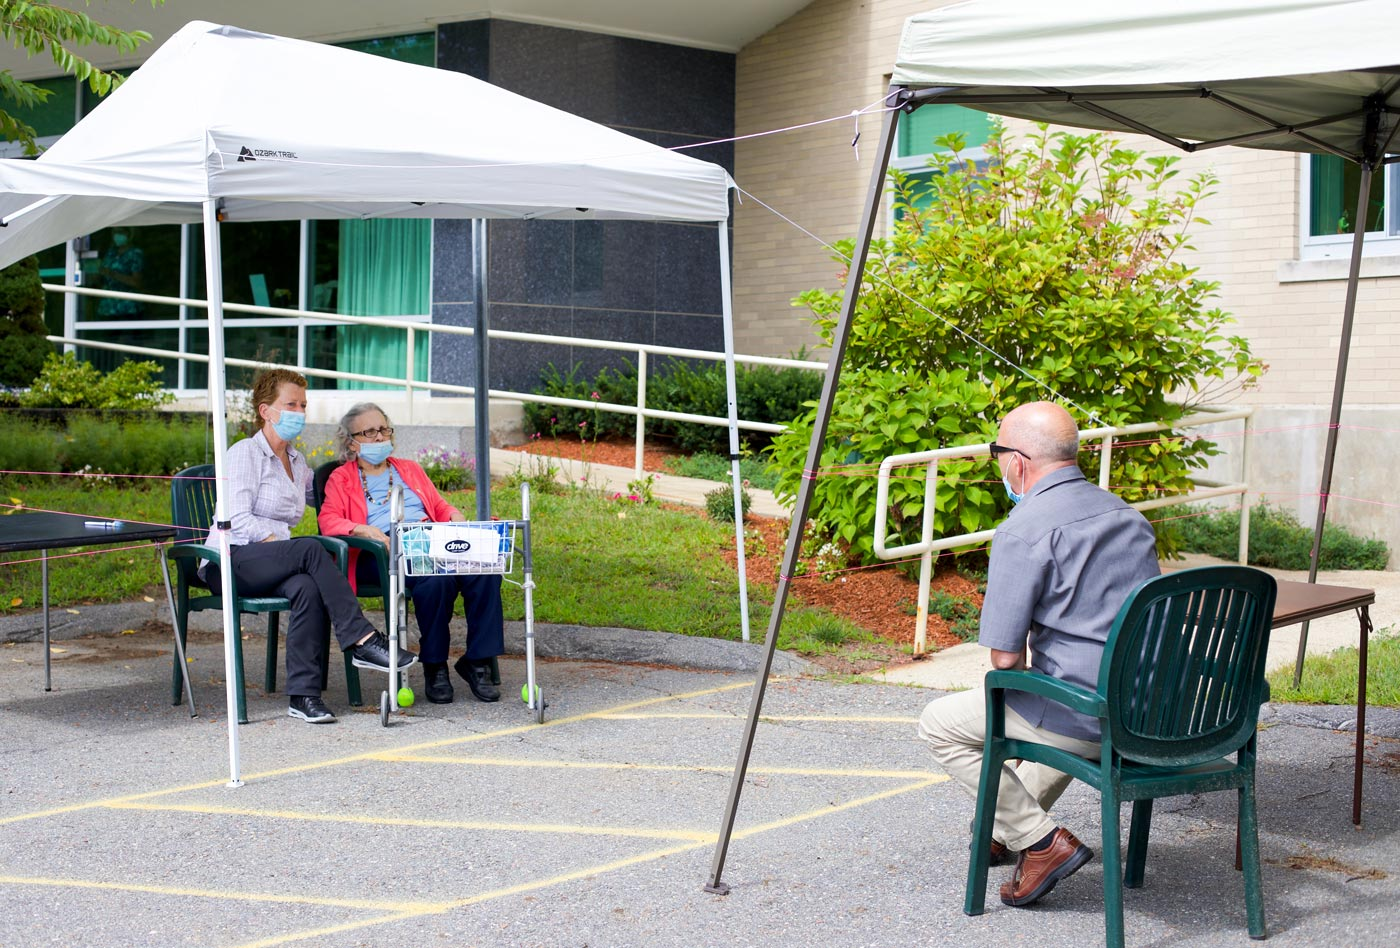 Pam Puzyn and a resident participate in an outdoor visit at the Warde Rehabilitation and Nursing Center in Windham, NH